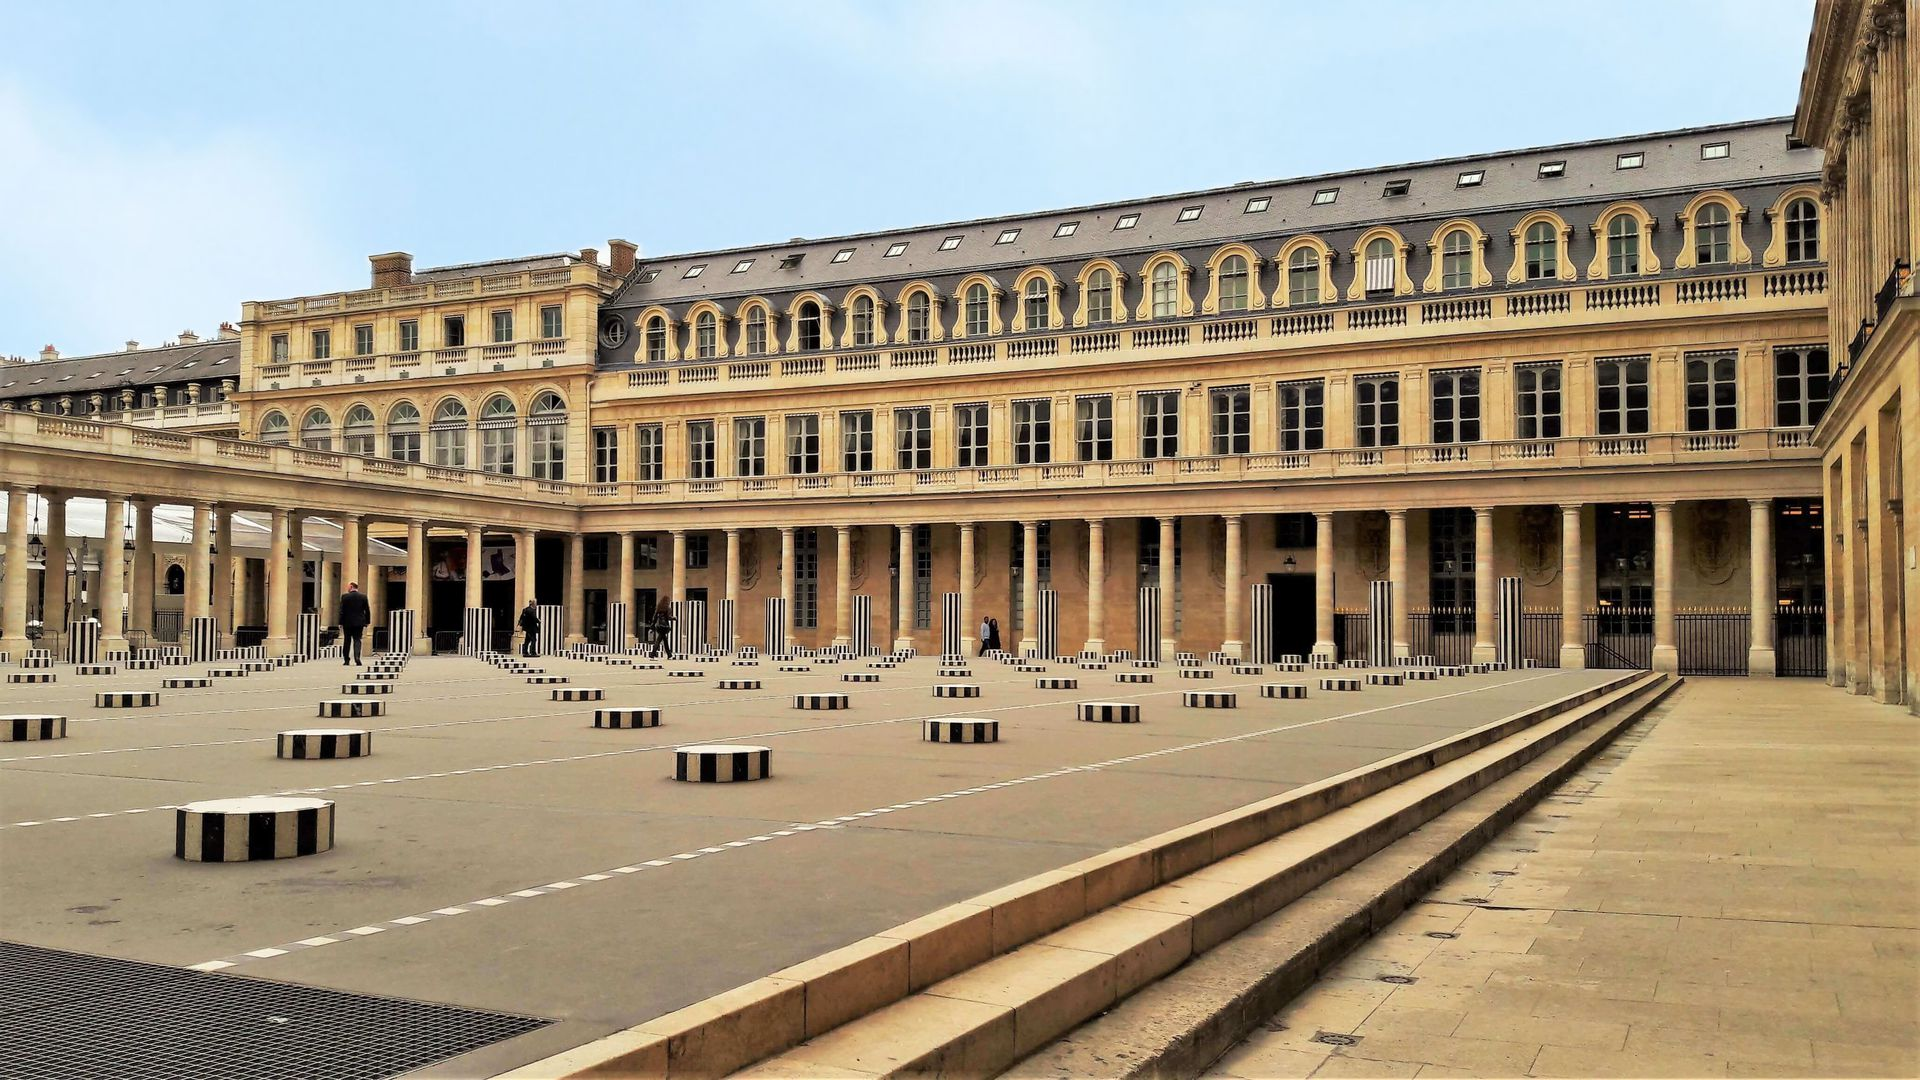 Palais Royal and the Covered Galleries: Walking Audio Tour